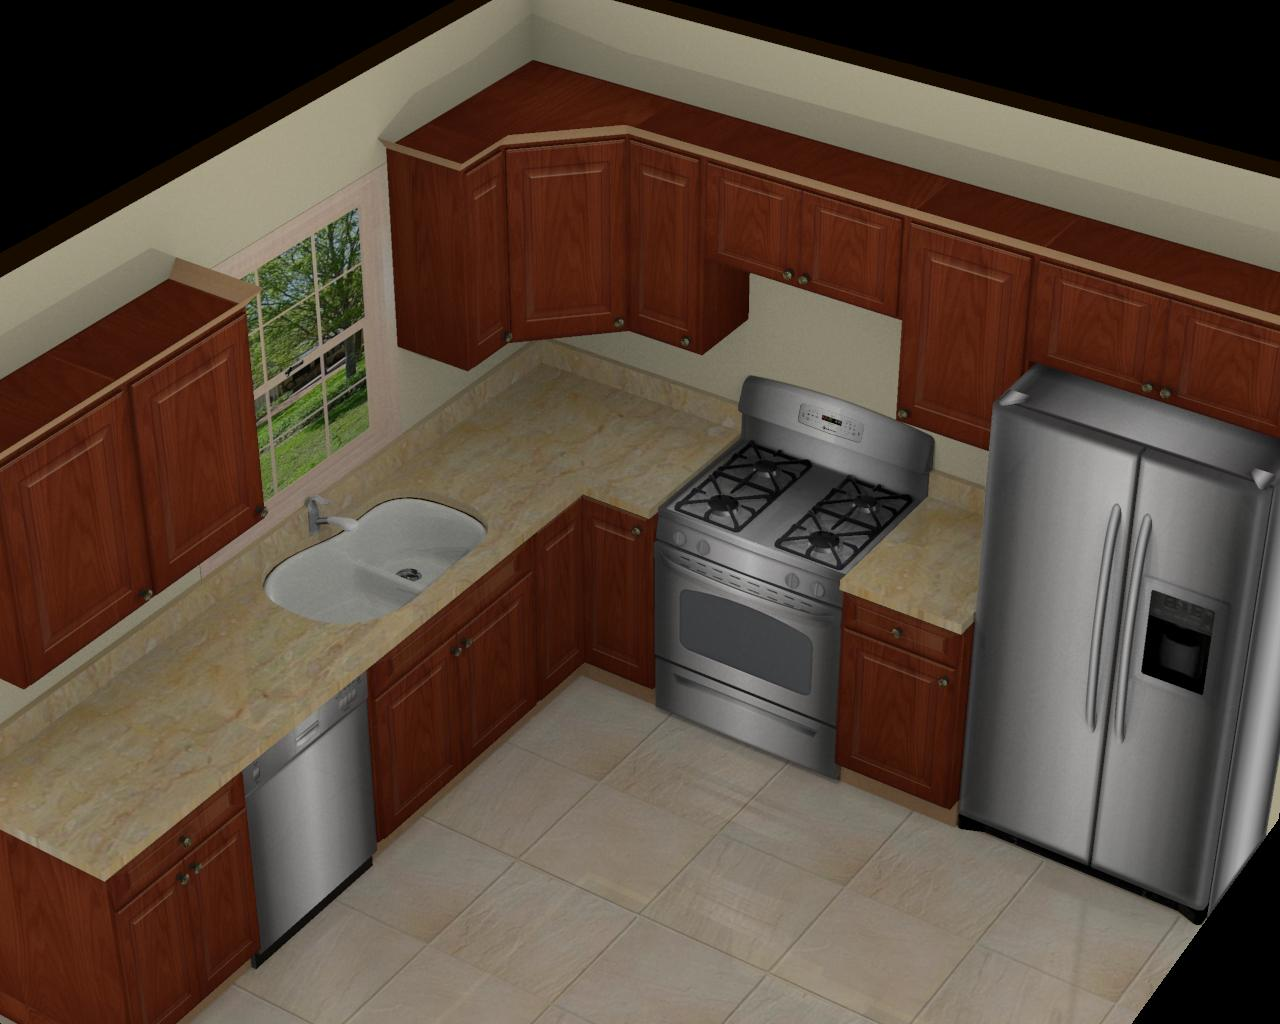 Foundation dezin decor 3d kitchen model design for Square shaped kitchen designs